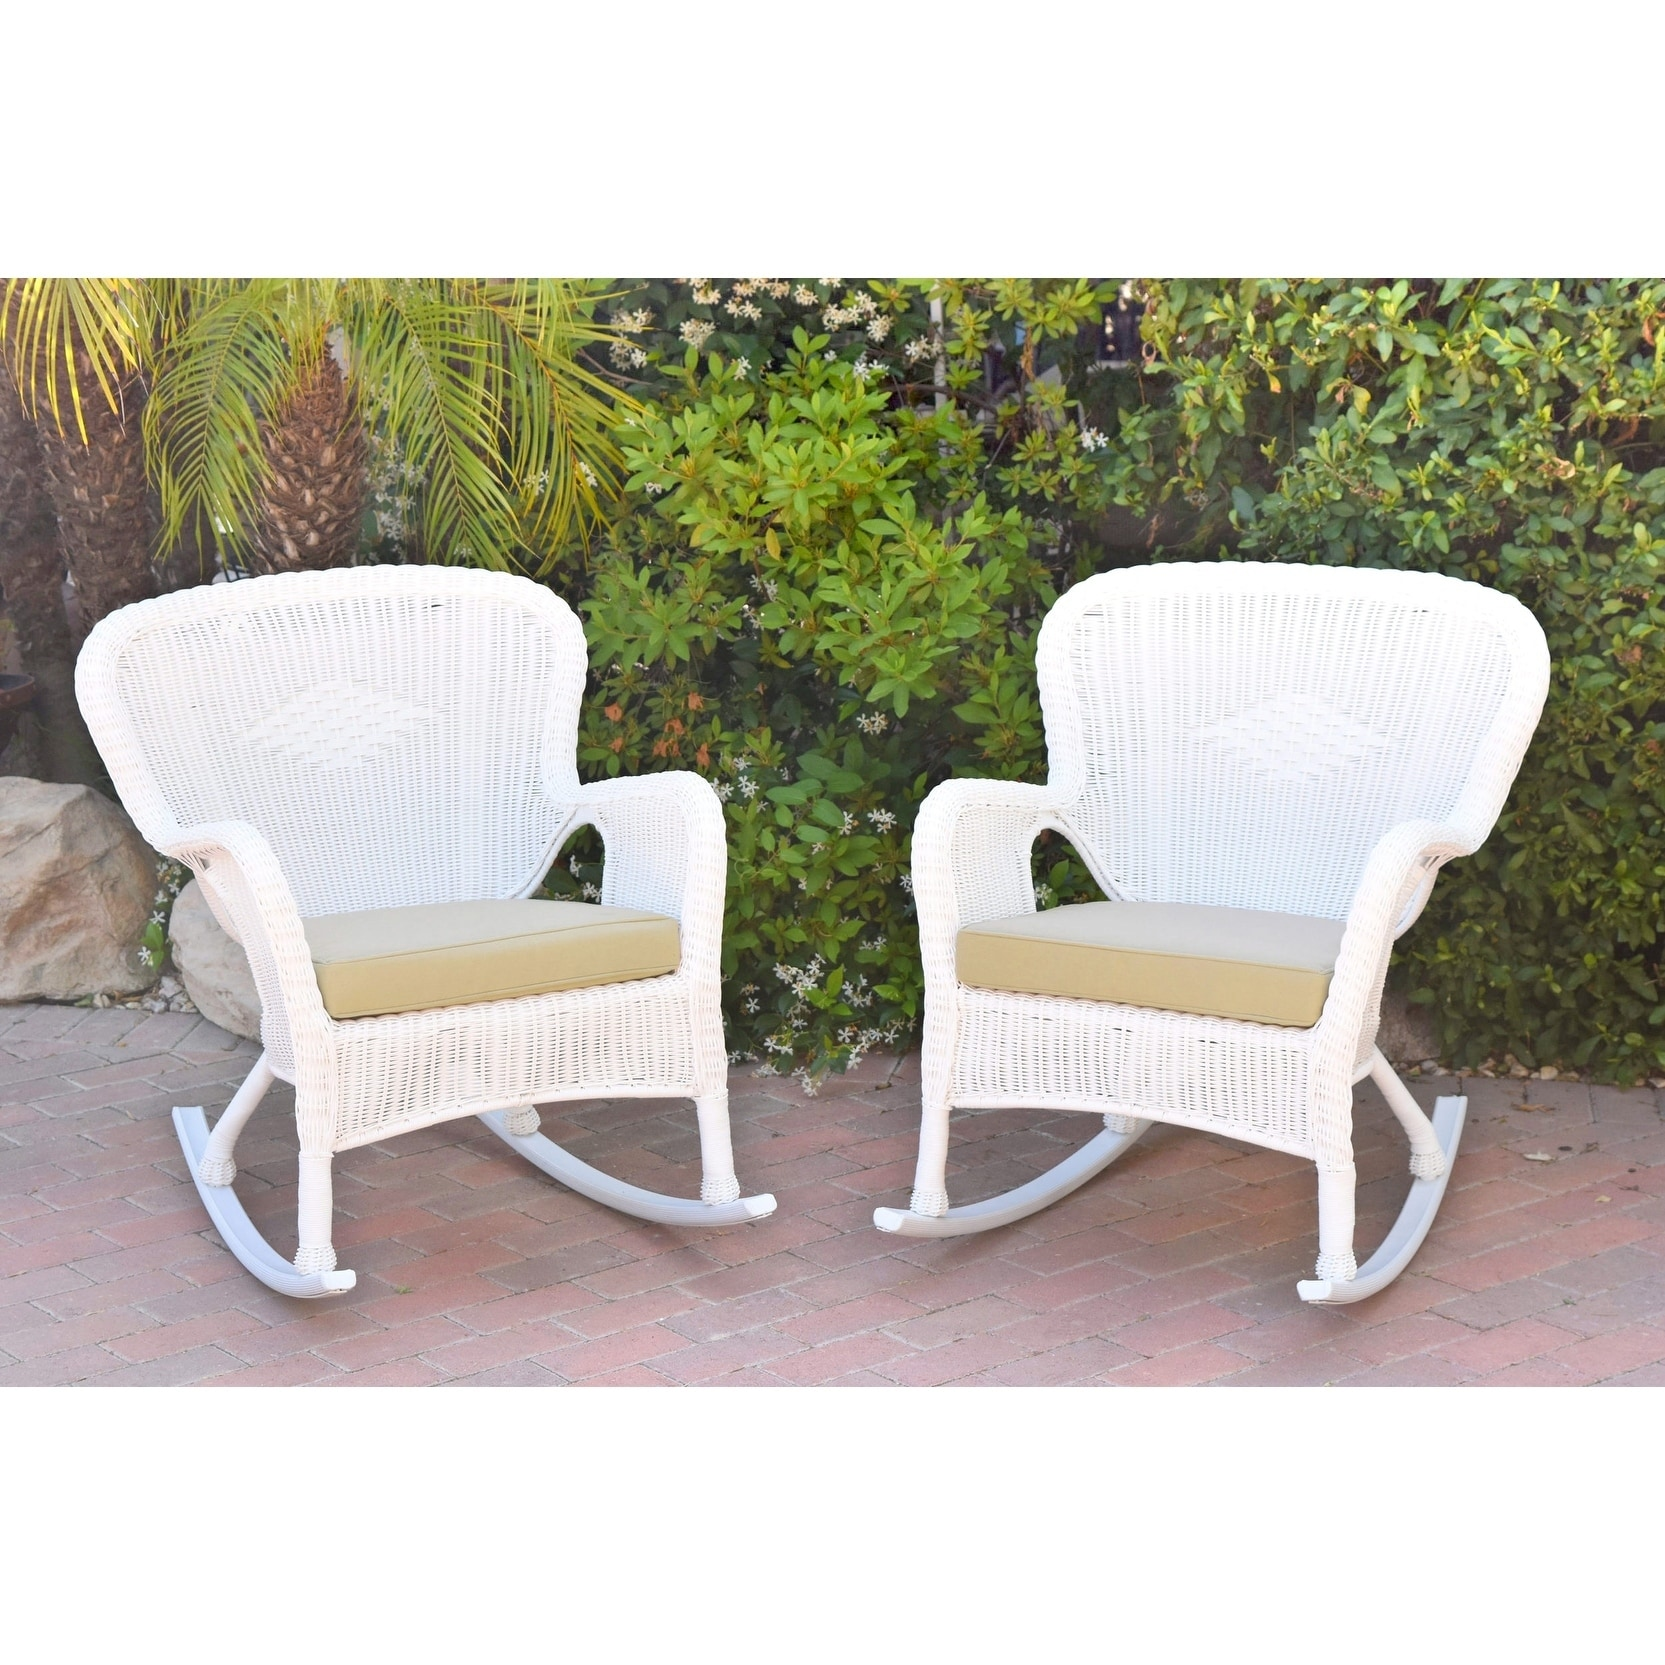 Set Of 2 Windsor White Resin Wicker Rocker Chair With Ivory Cushions